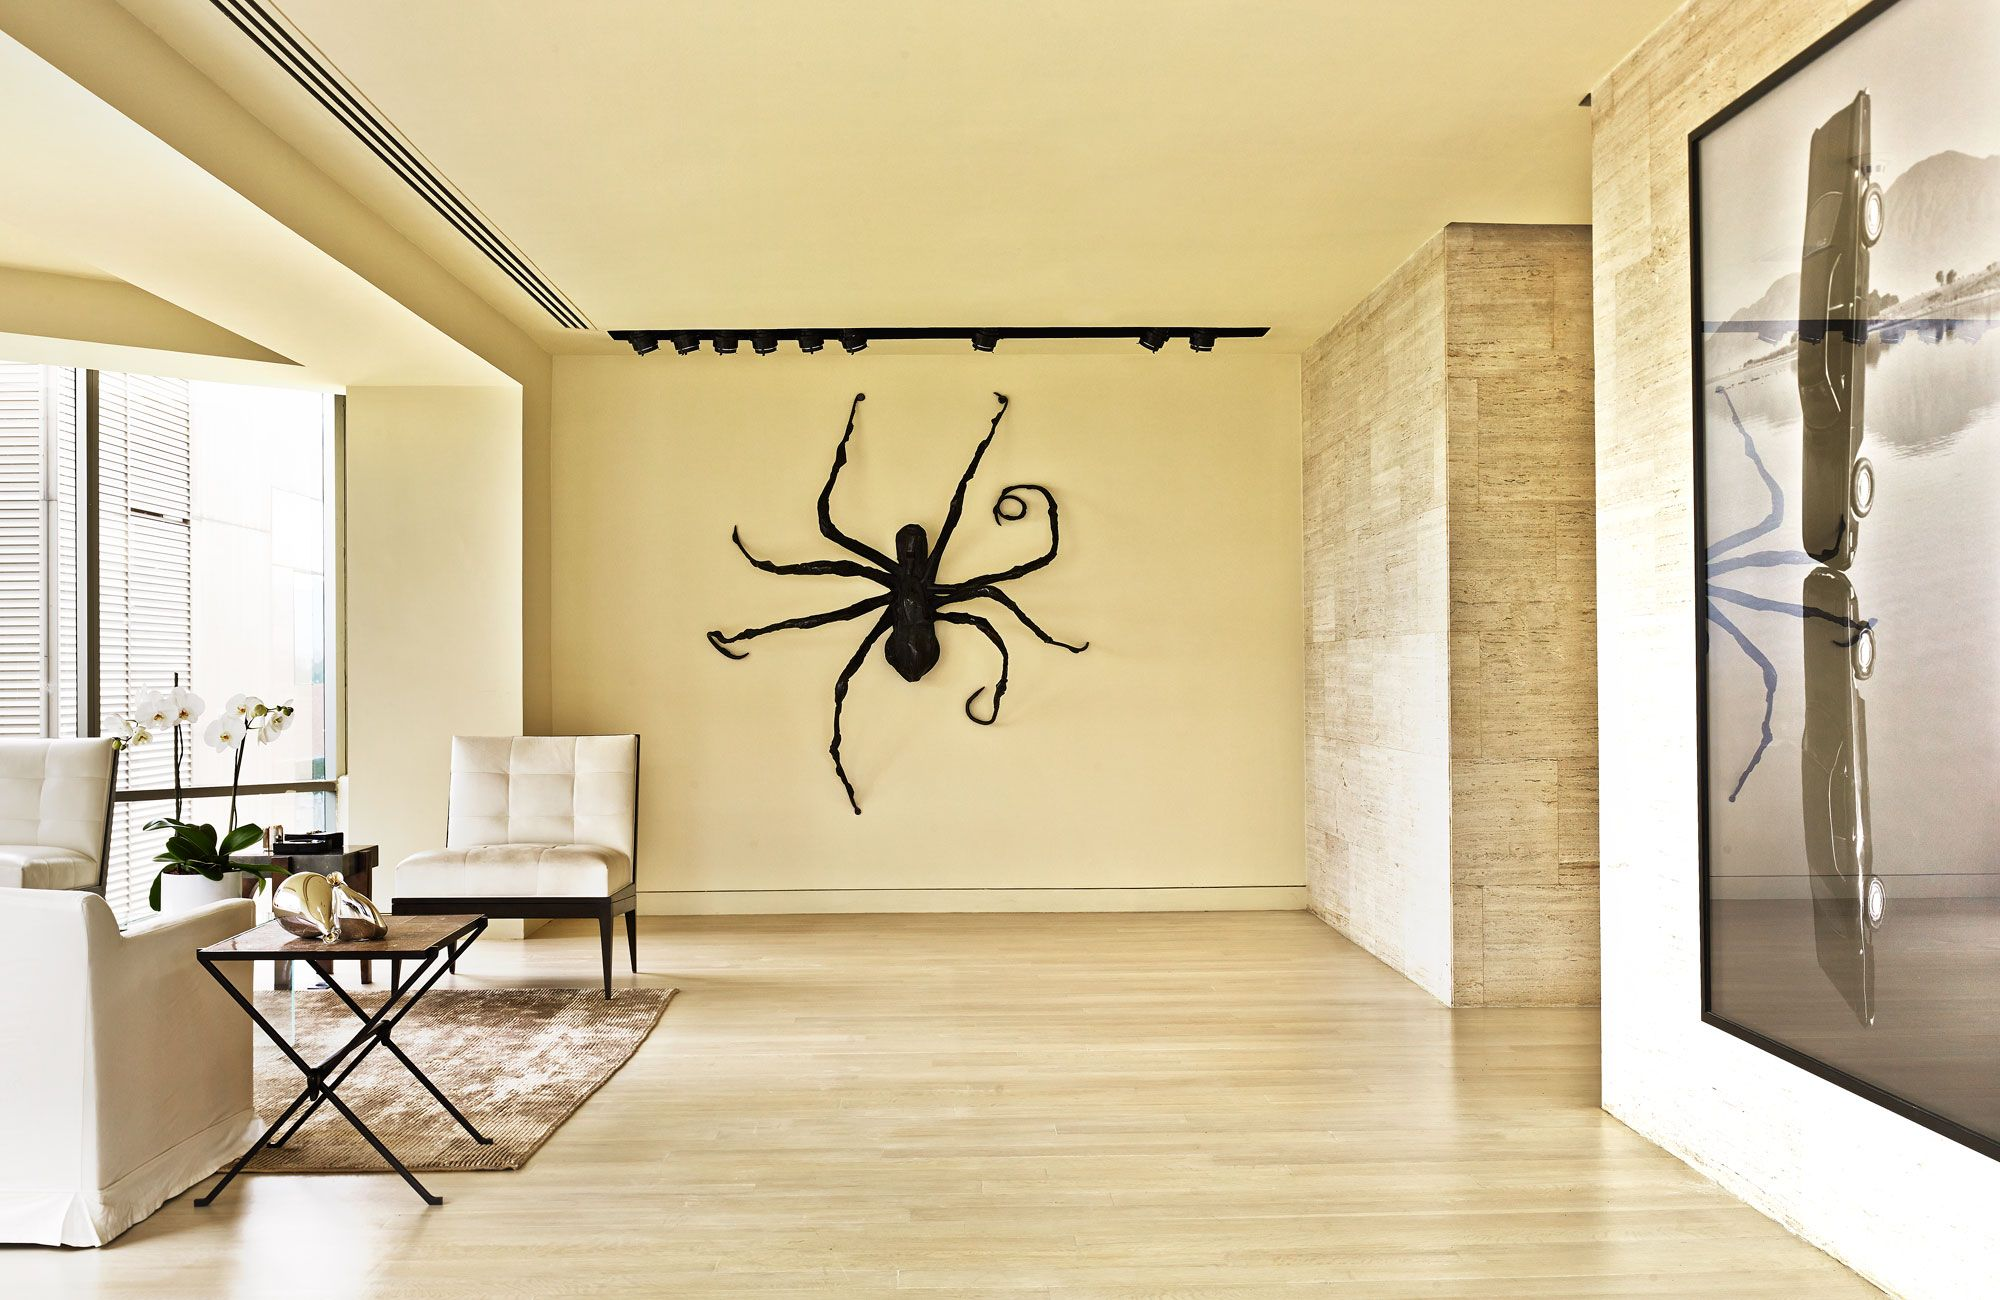 Art Nuevo - Spider IV, 1996, by Louise Bourgeois, and Gonzalo Lebrija's Entra la Vida y la Muerte, 2008, in the small foyer of Lopez's Mexico City apartment.